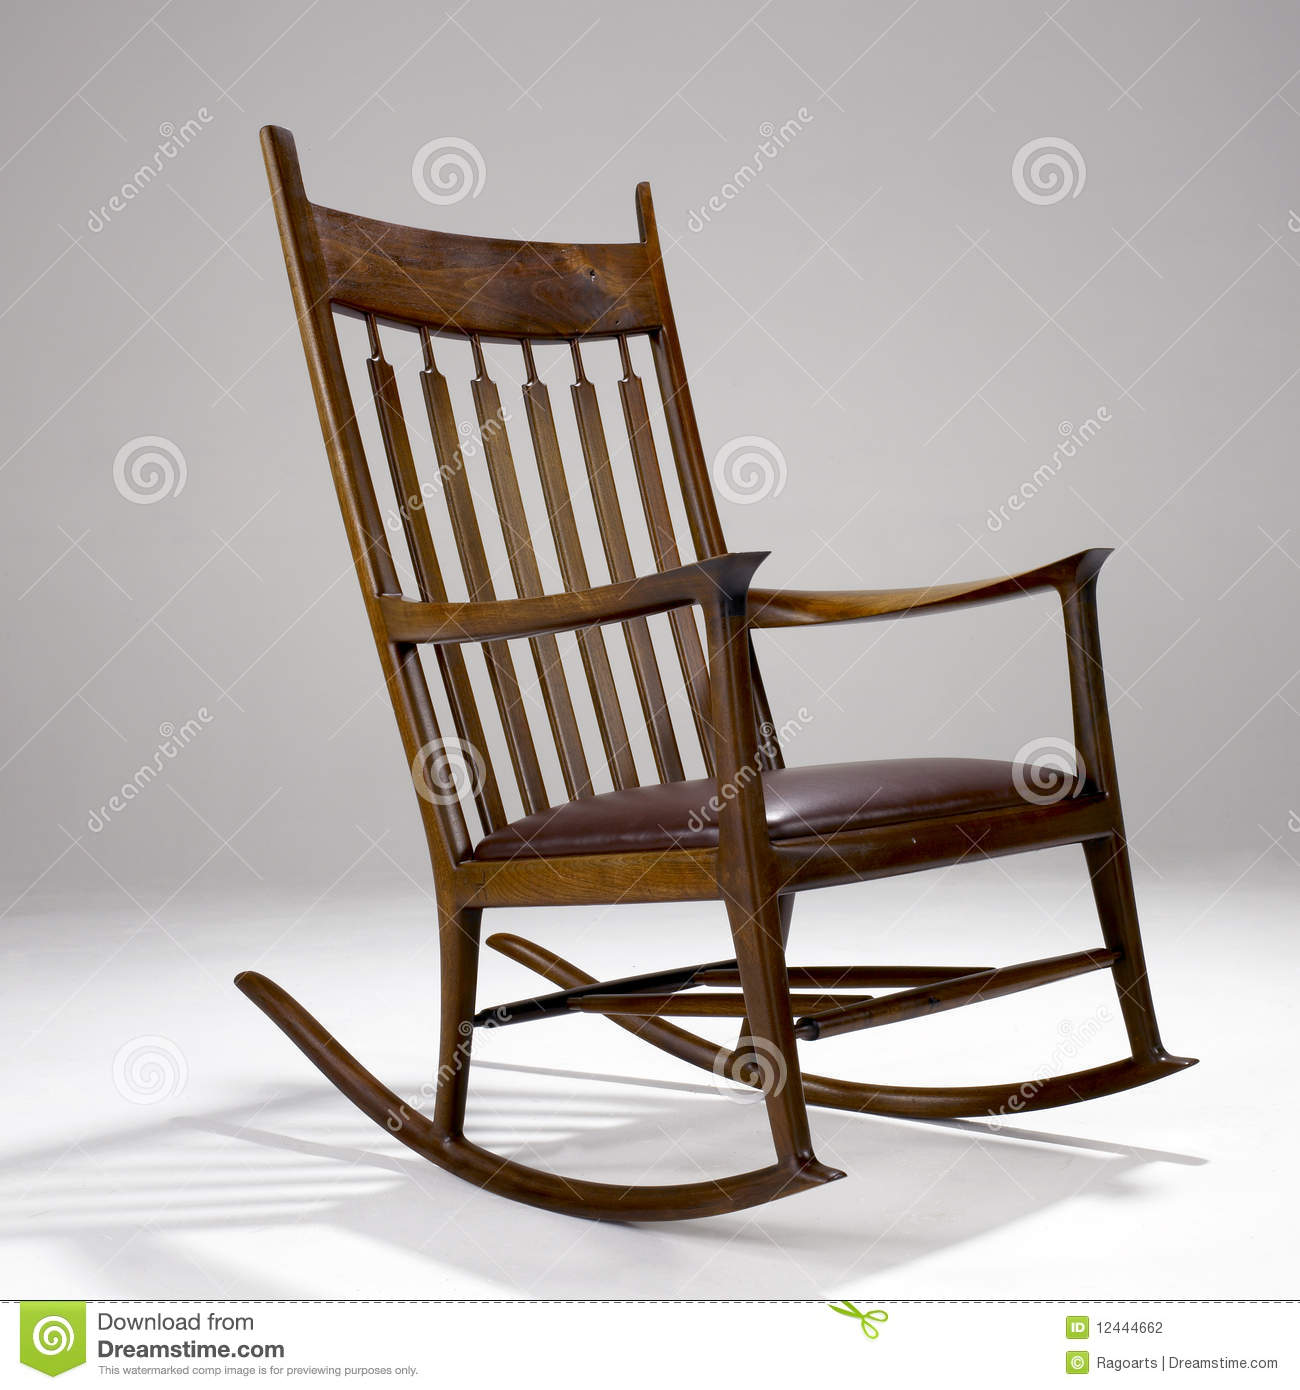 Iconic modern design rocking chair editorial photography image 12444662 - Rocking chair moderne ...